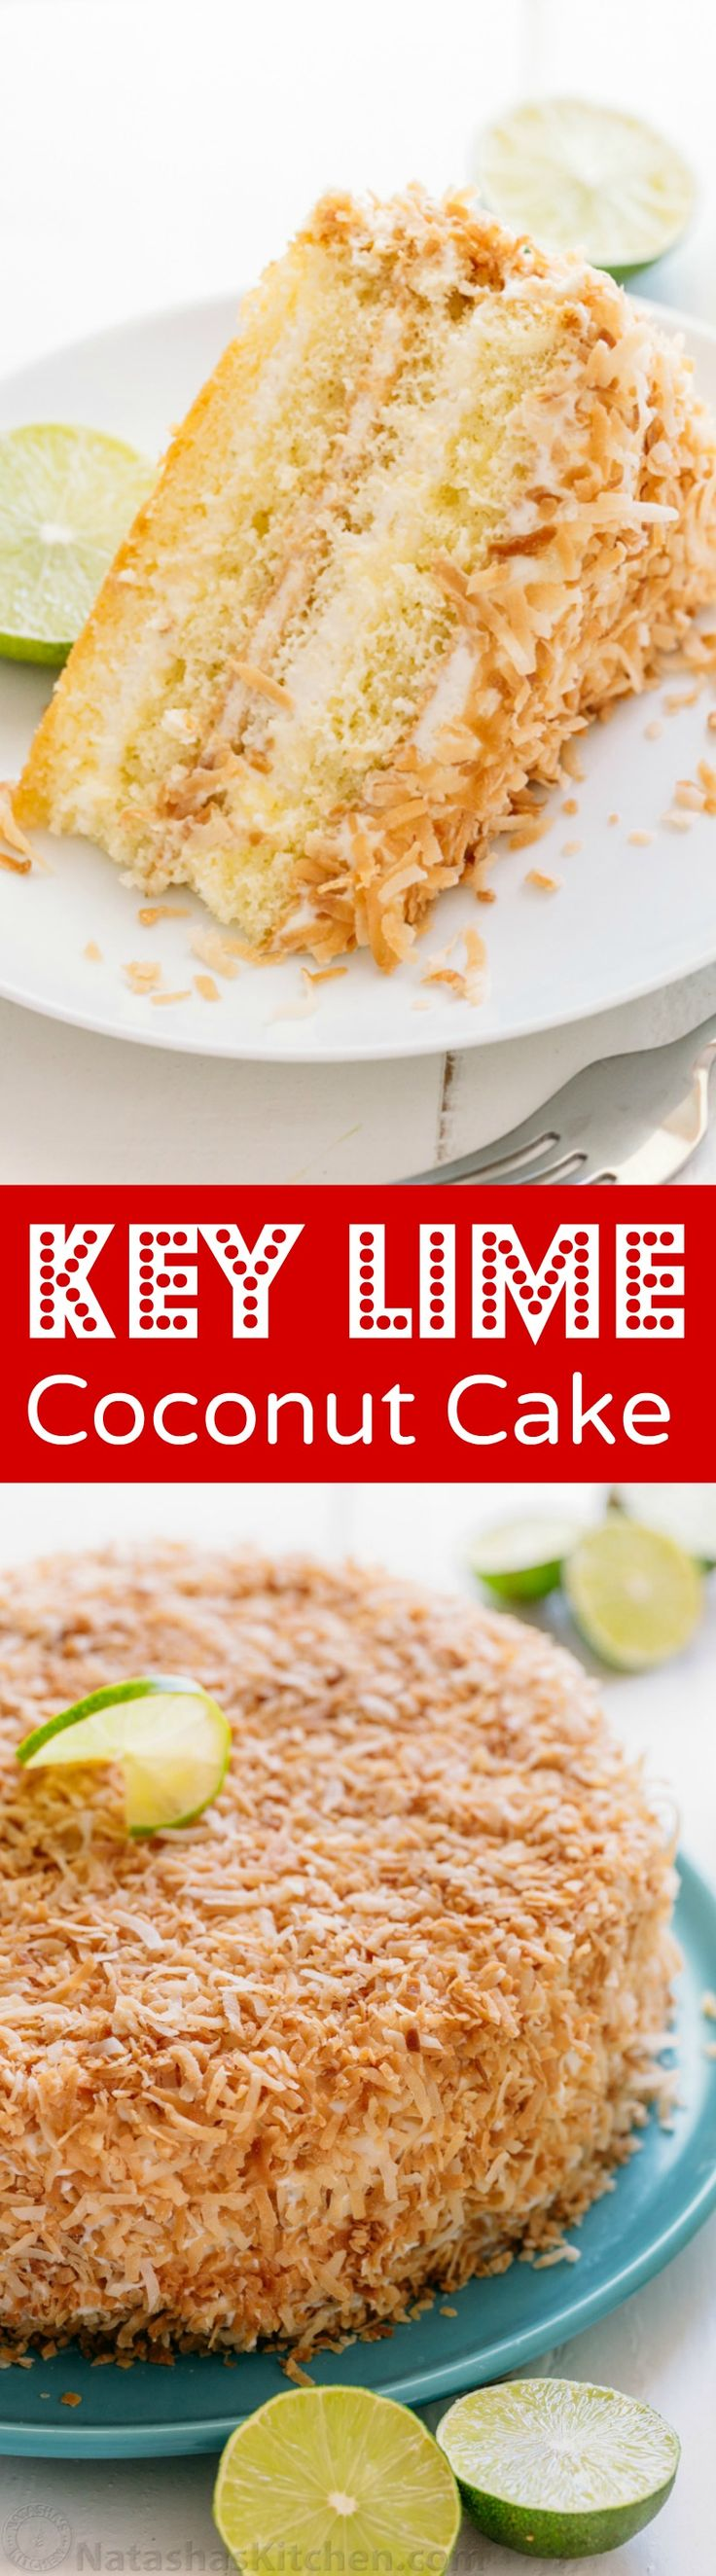 Key lime cake is the ultimate summer party cake. This key lime cake is pummeled with toasted coconut and boasts the juice of 5 limes. So refreshing! | natashaskitchen.com